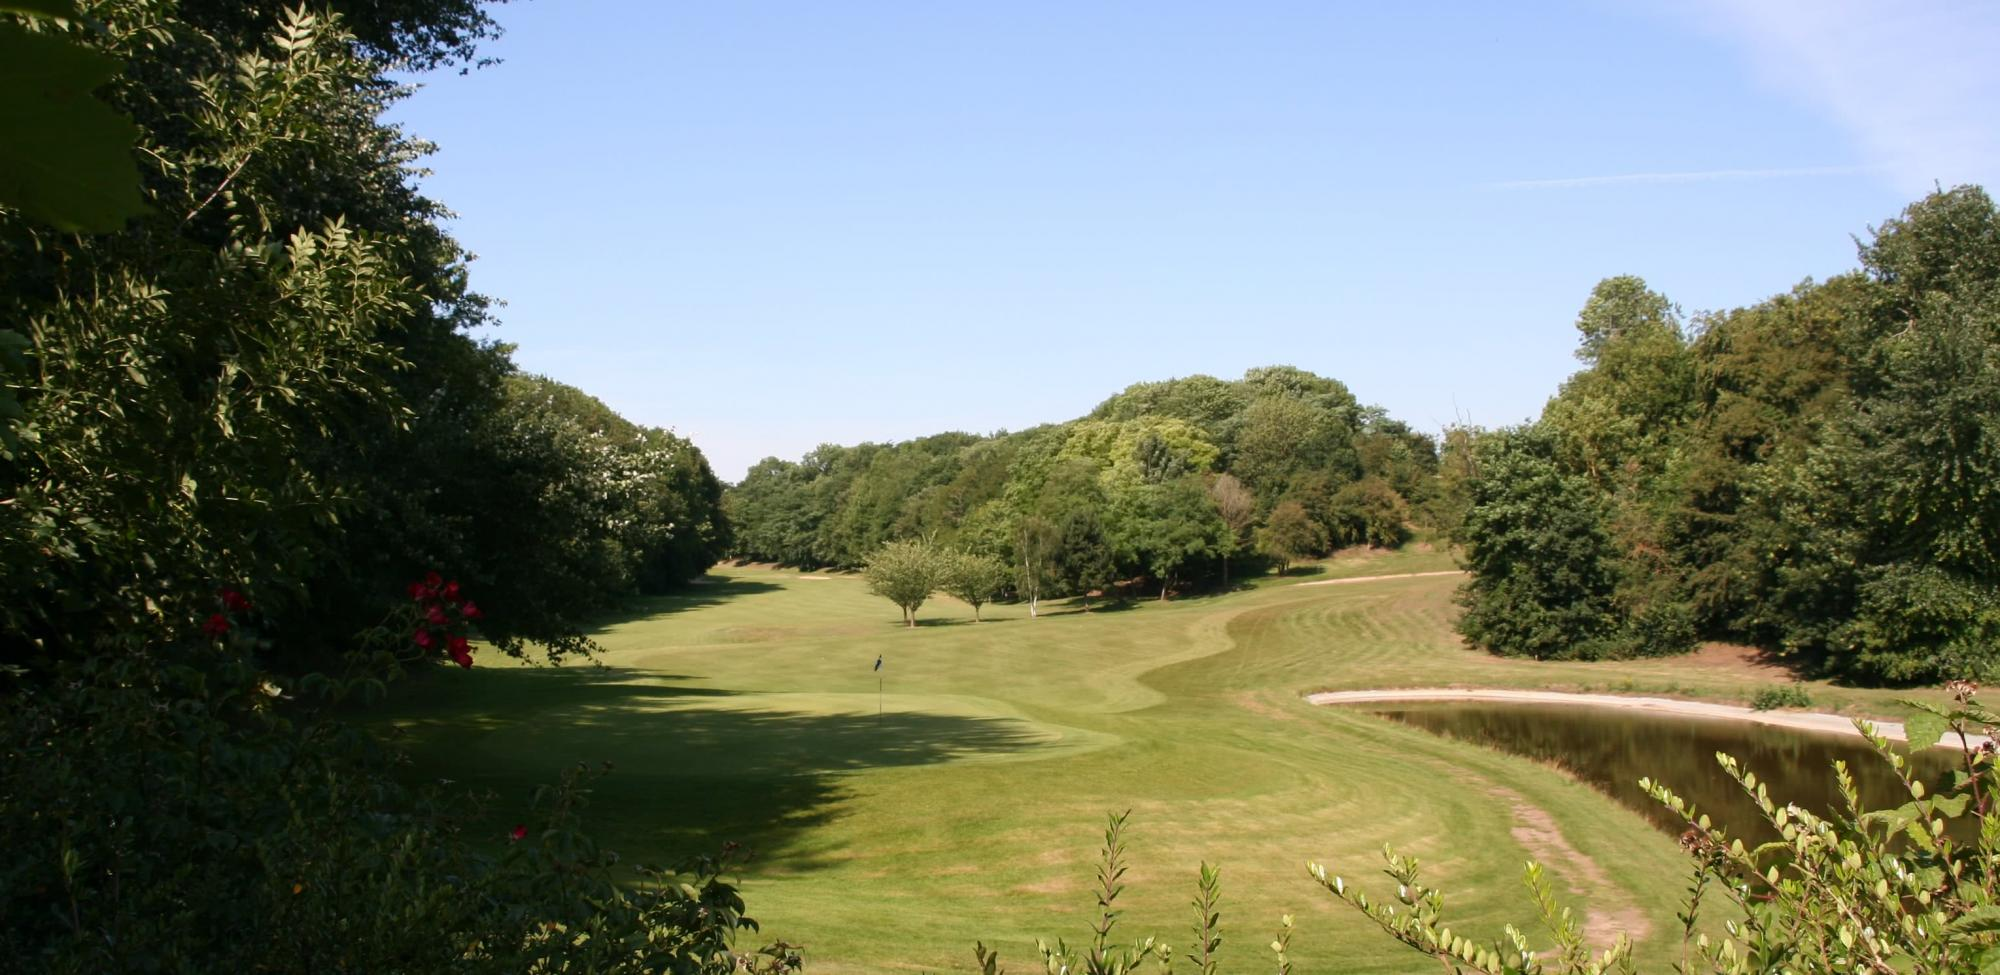 Golf de Caen hosts lots of the most desirable golf course in Normandy